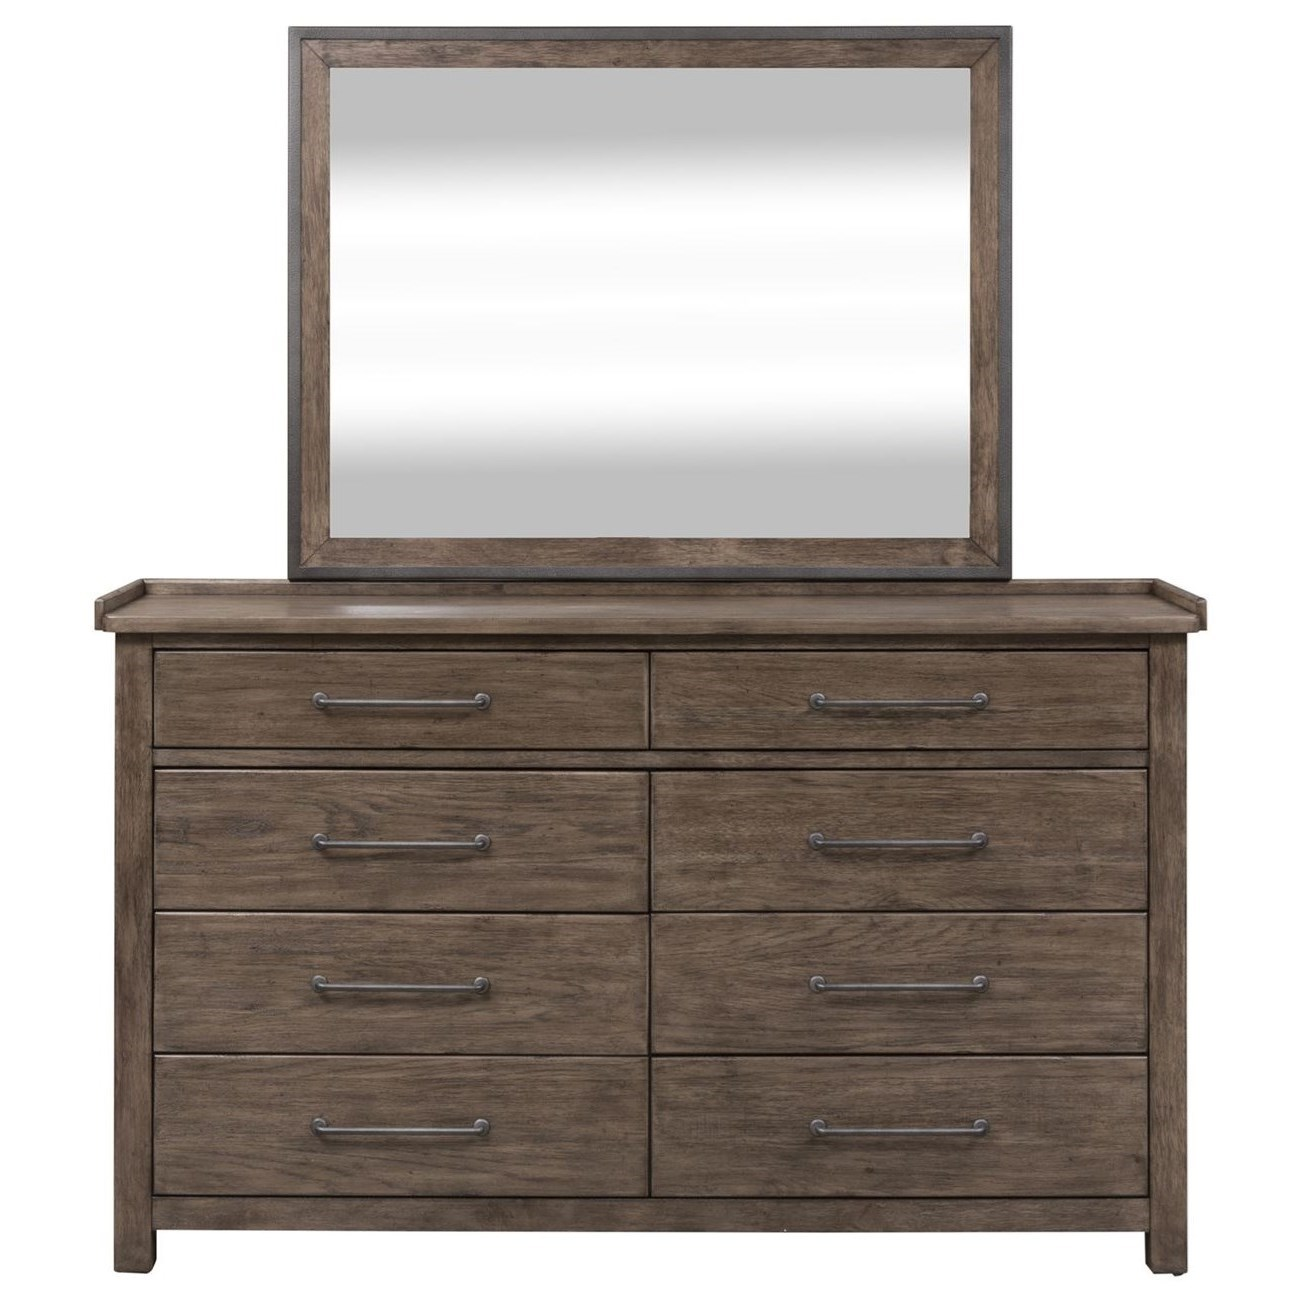 Sonoma Road Dresser & Mirror  by Liberty Furniture at Home Collections Furniture